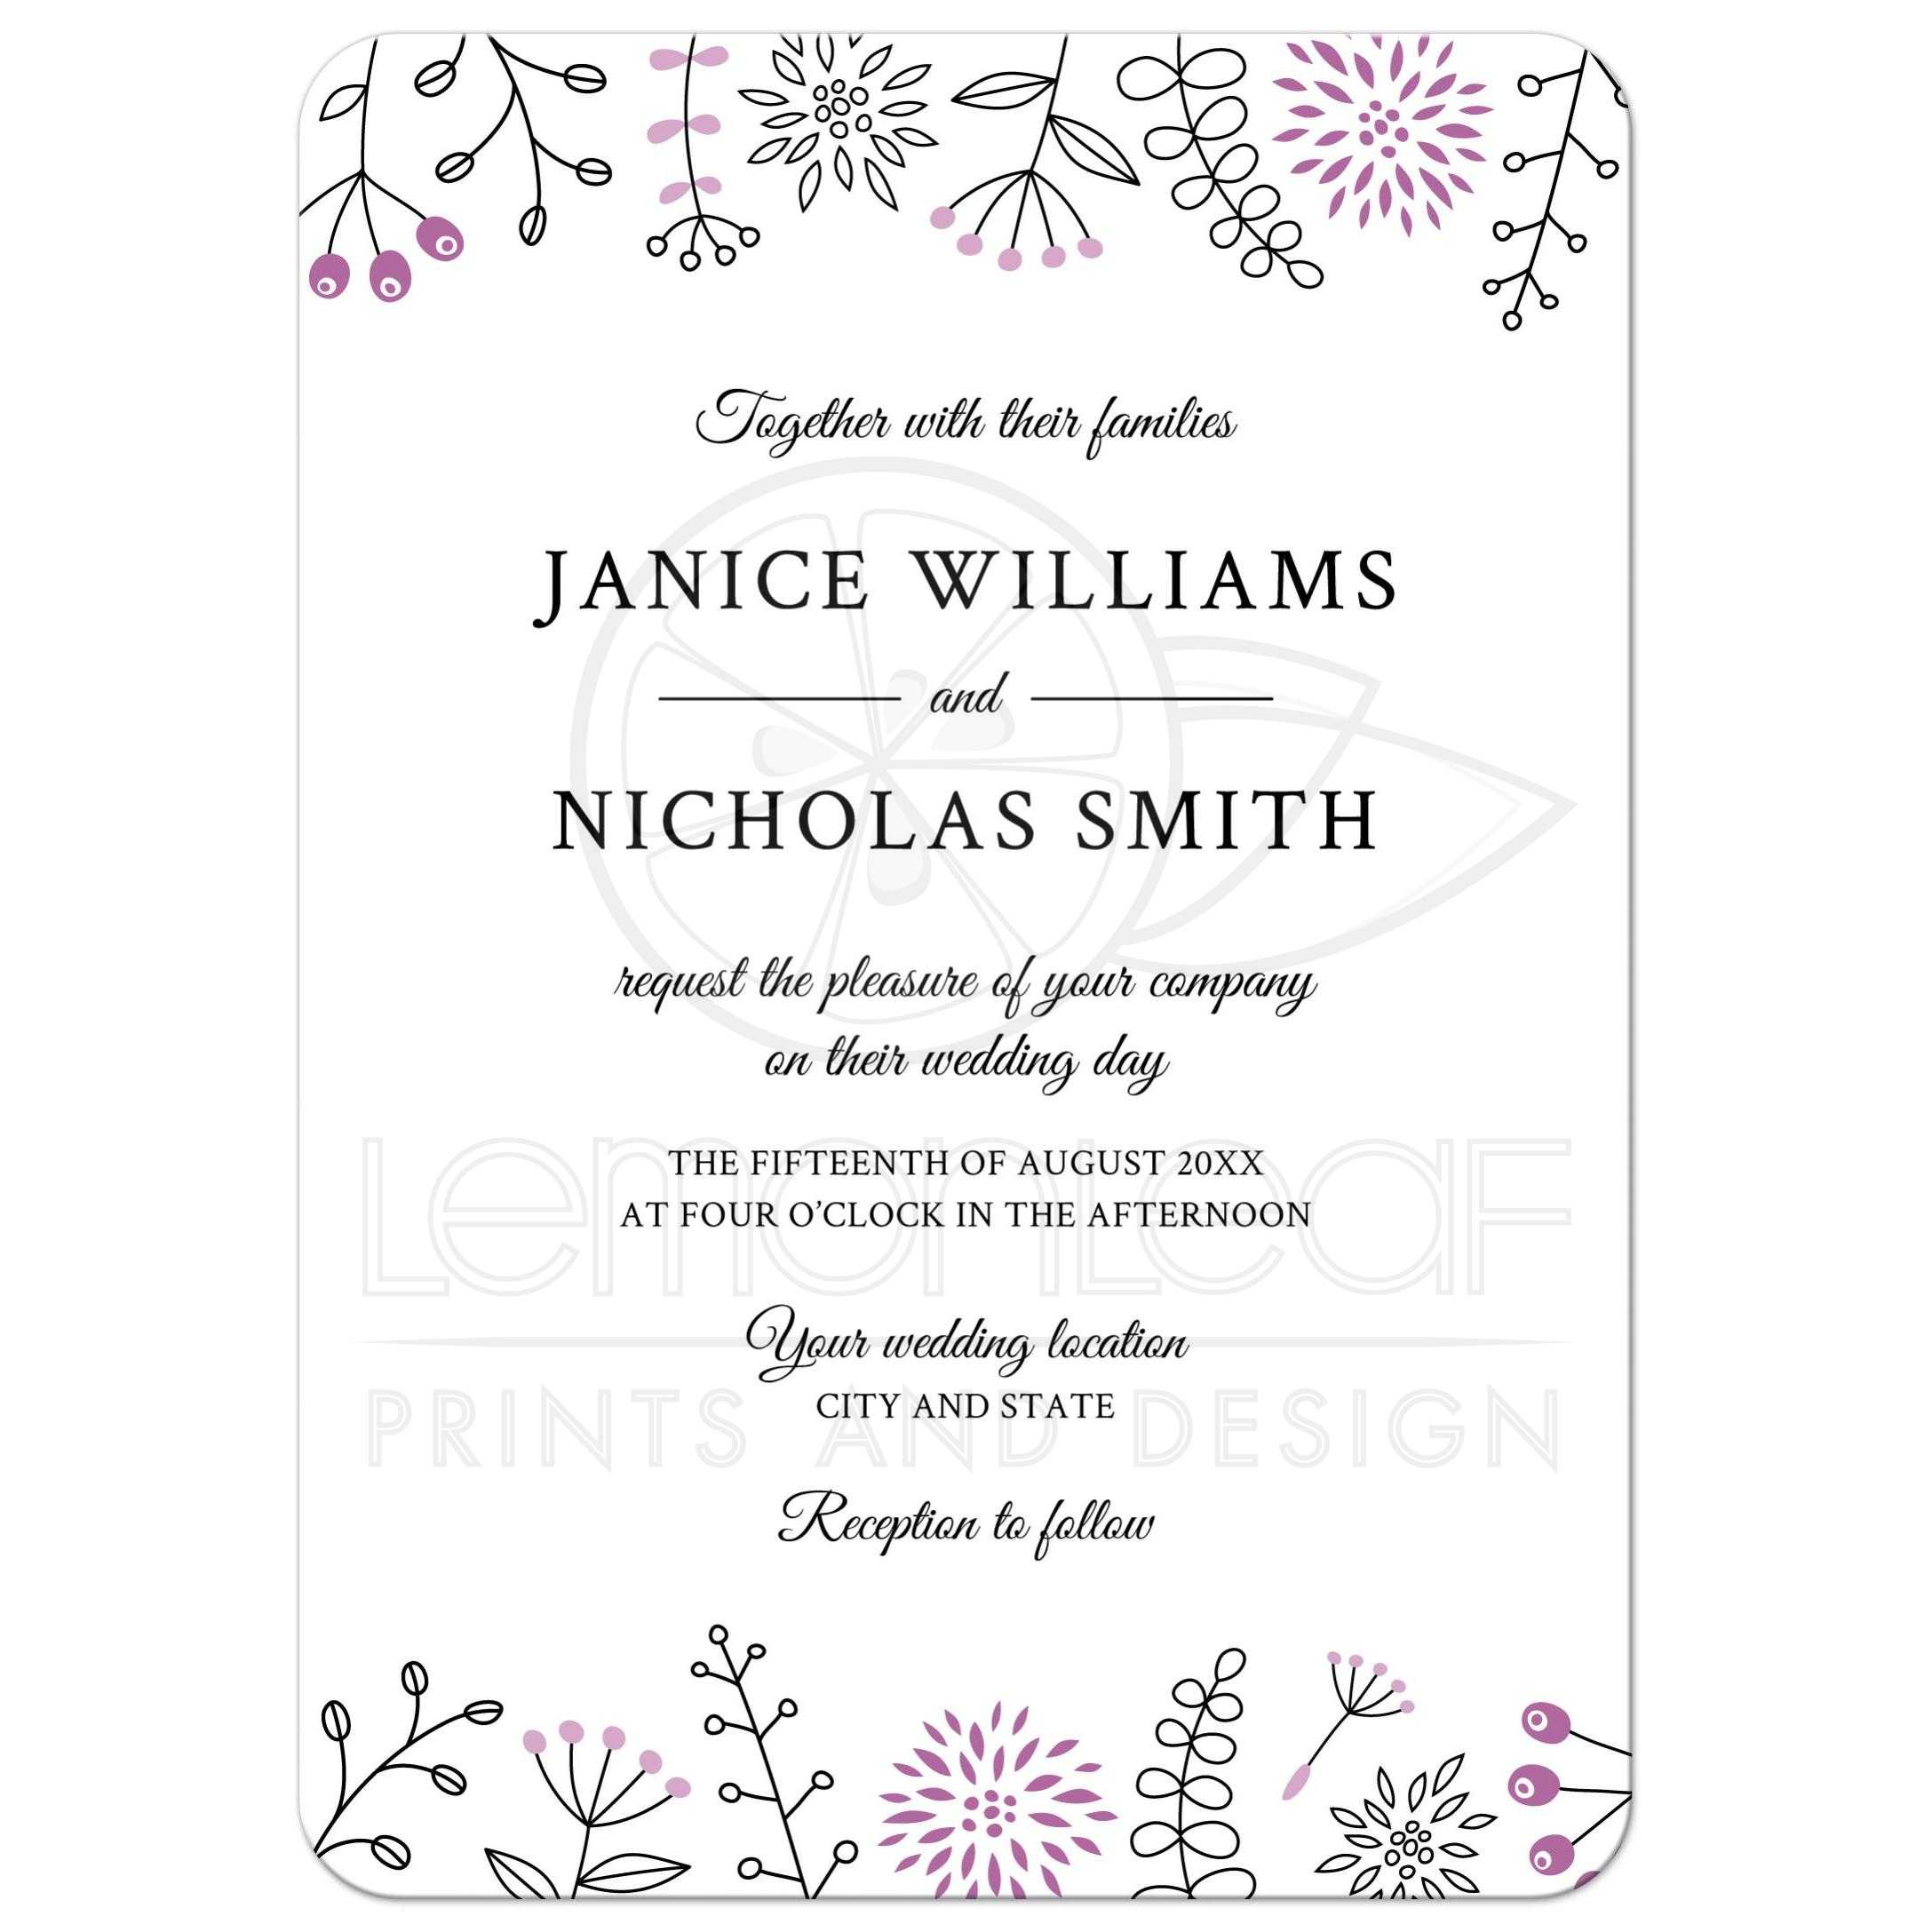 Minimalist Wedding Invitations was Beautiful Ideas To Make Beautiful Invitations Ideas